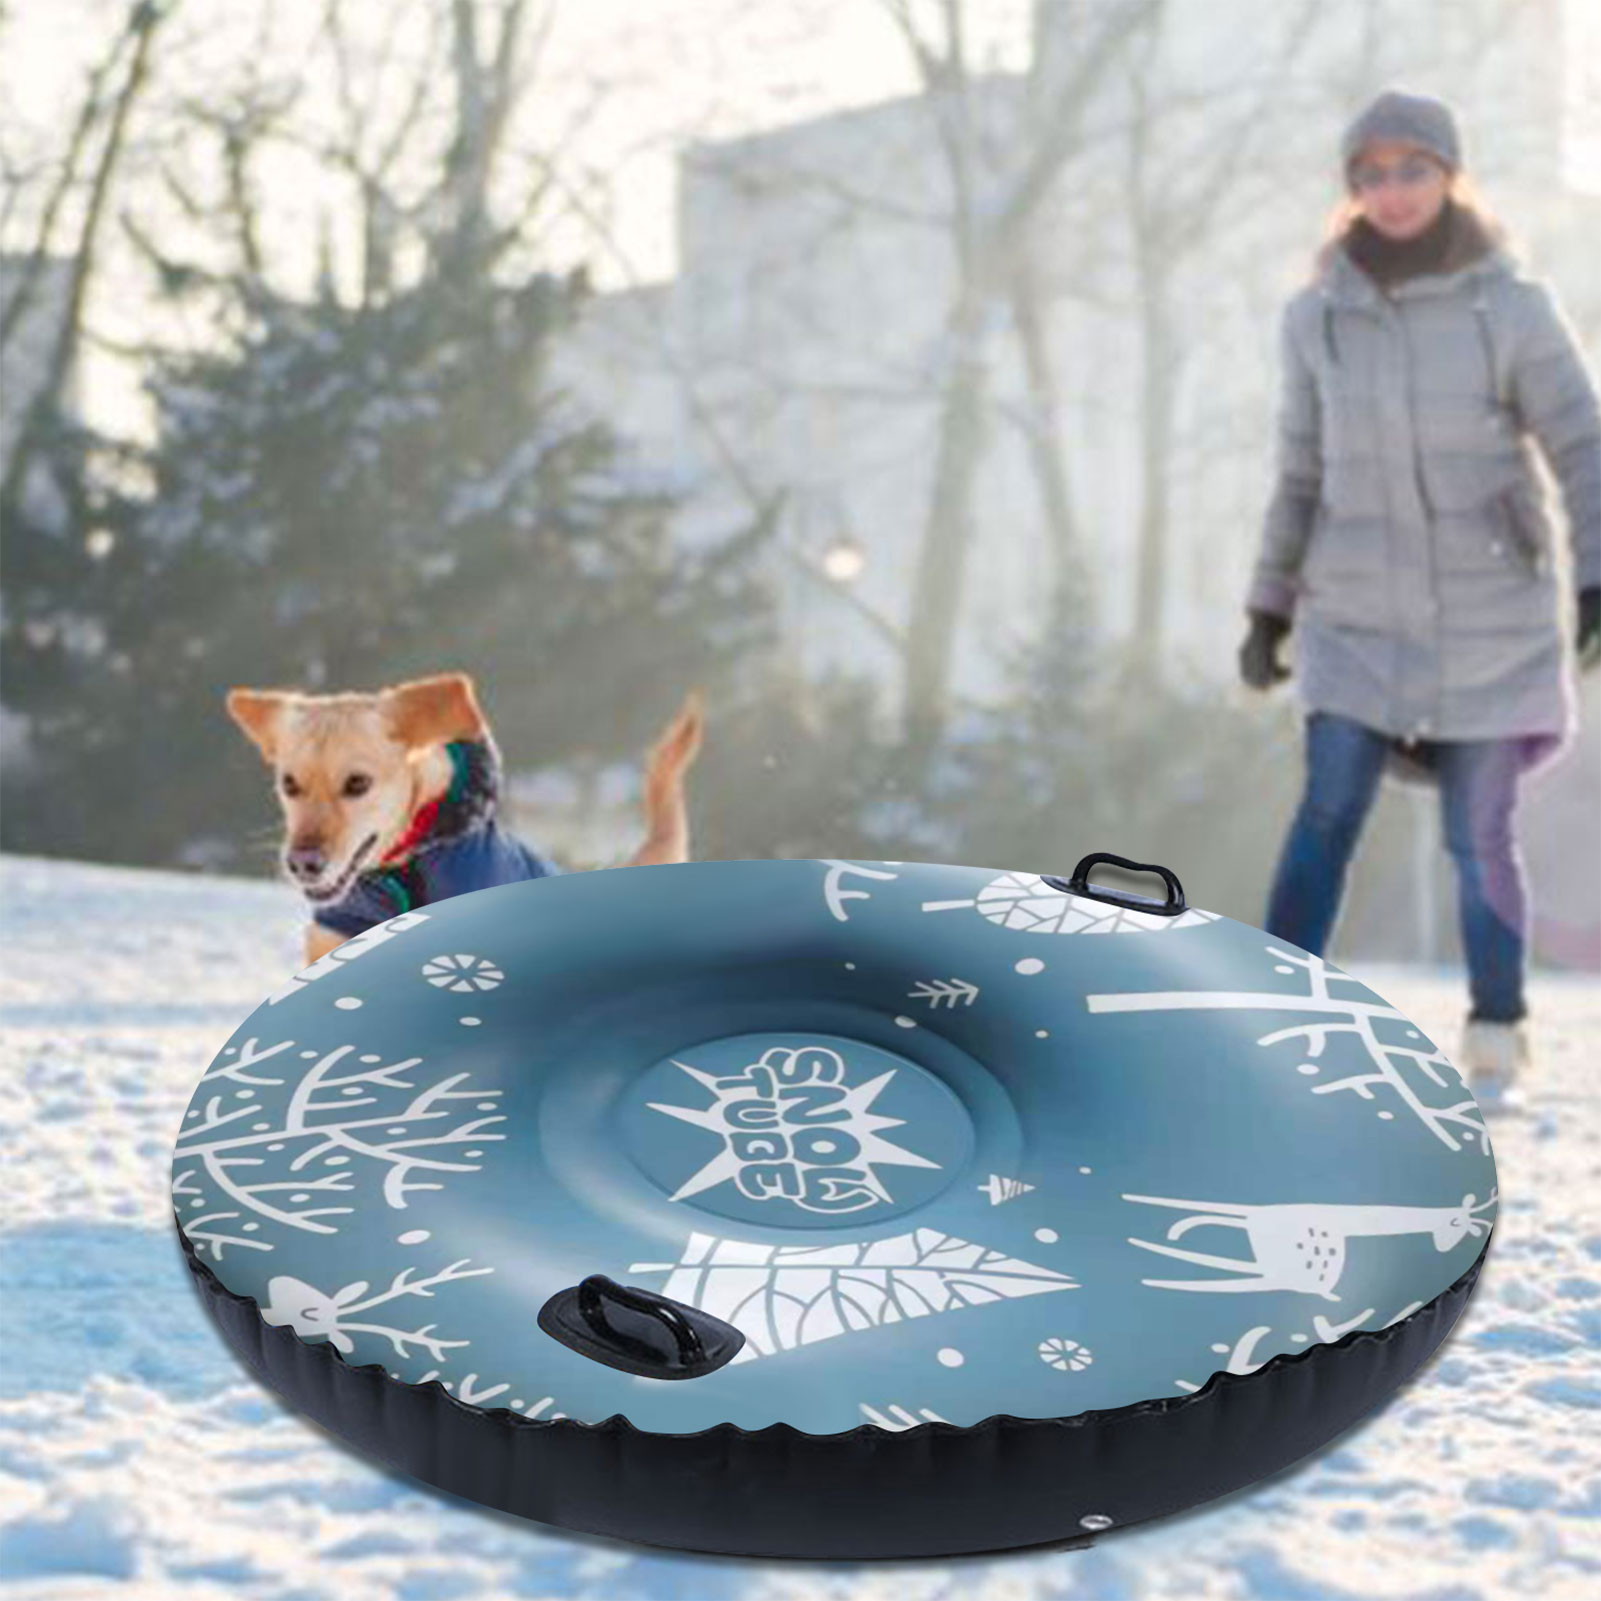 47 Inch Inflatable Snow Toy Winter Inflatable Ski Circle Ski Circle With Handle Durable Children Adult Snow Tube Skiing Thickene